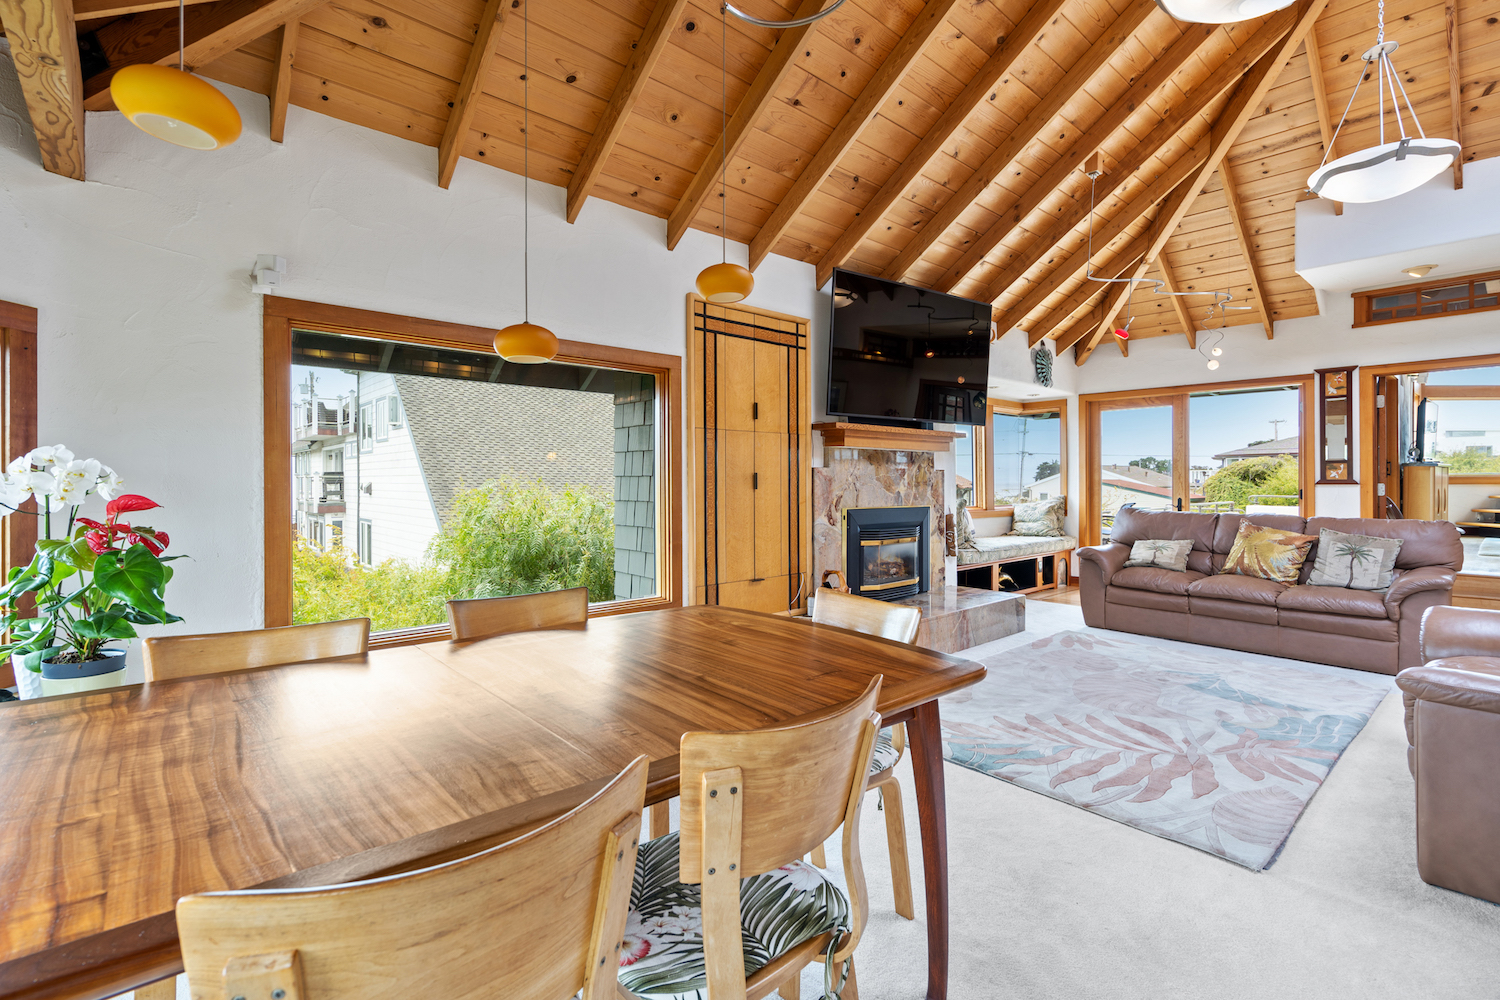 127 bethany curve - dining room with ocean views